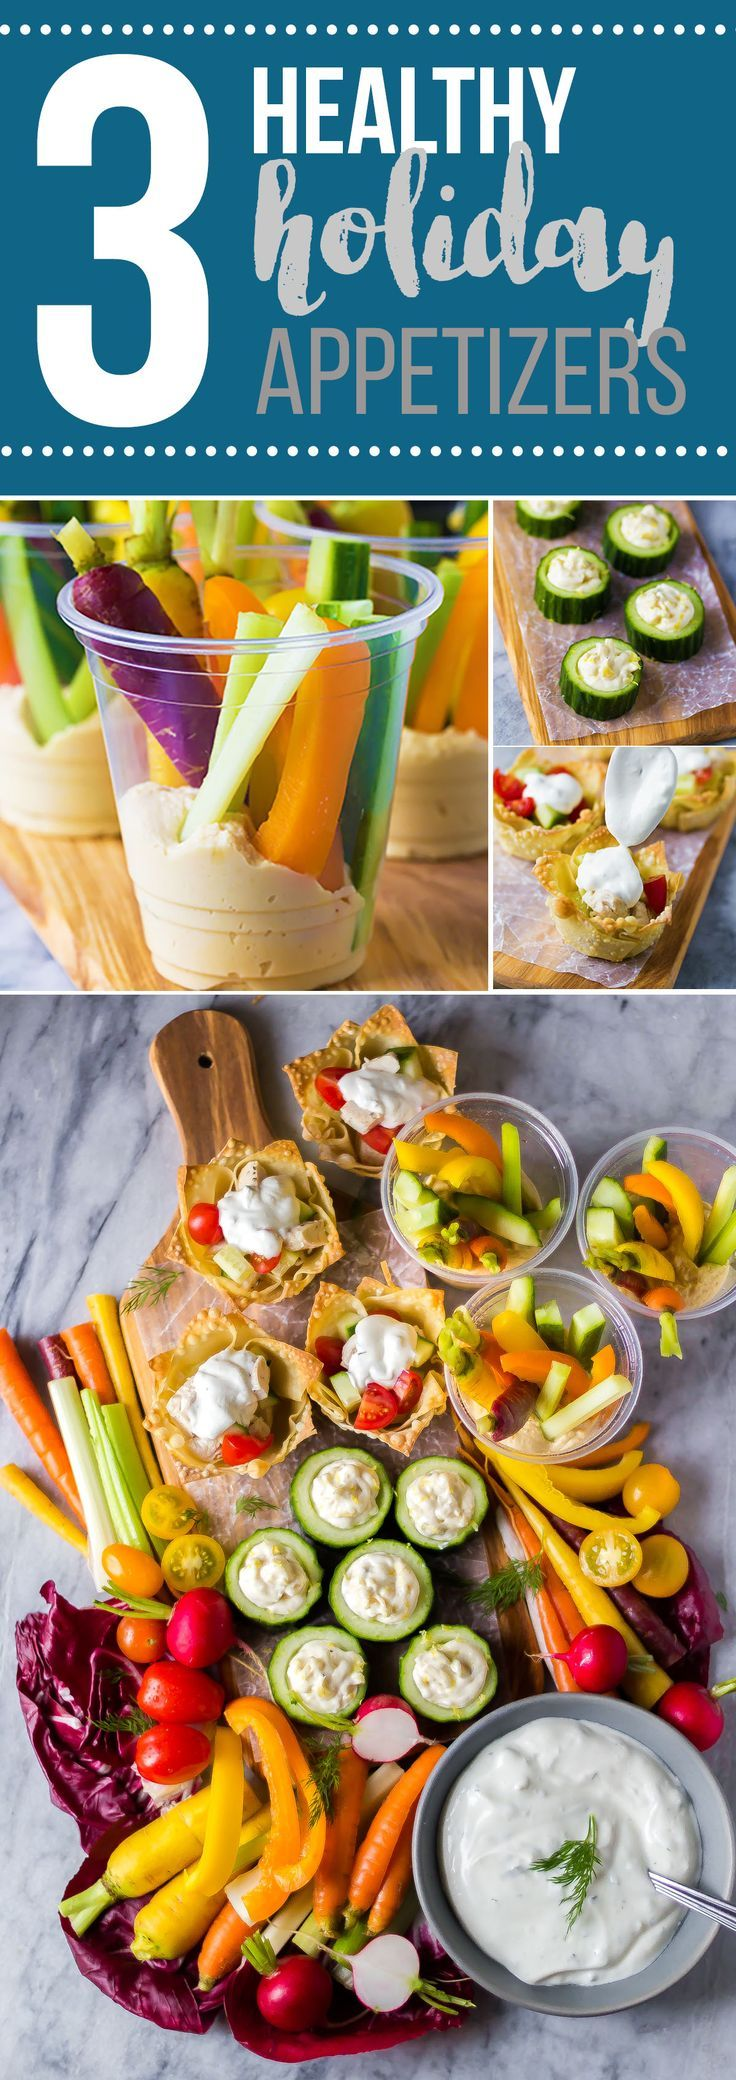 Whip up these healthy holiday appetizers with under 5 ingredients each!